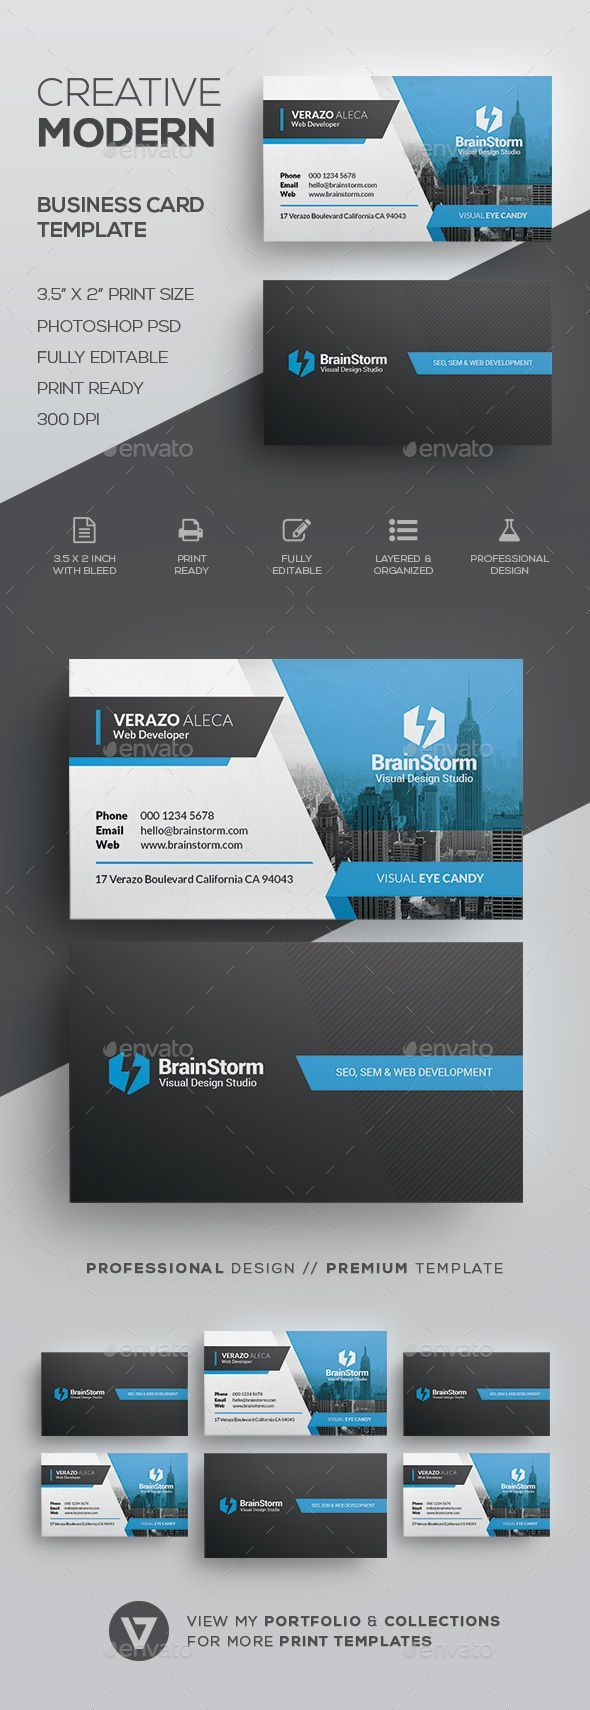 Creative Modern Business Card Template - Download he...